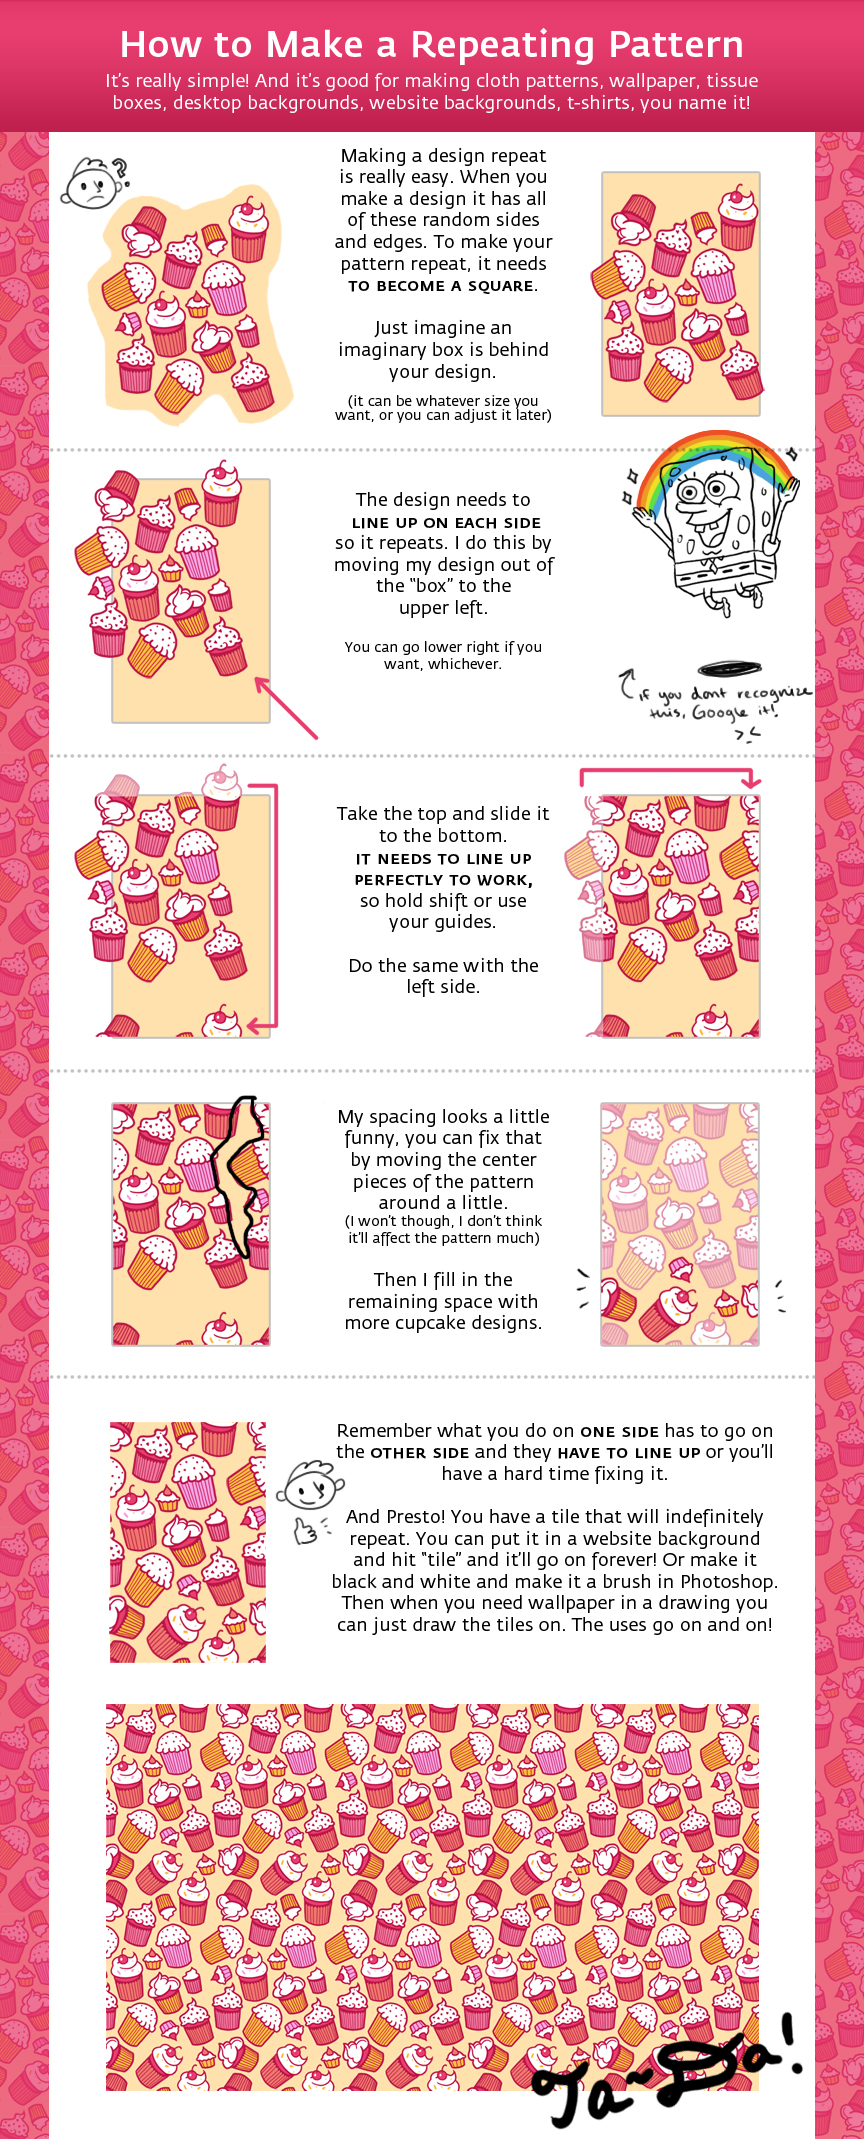 Repeating Pattern Tutorial by Cpresti